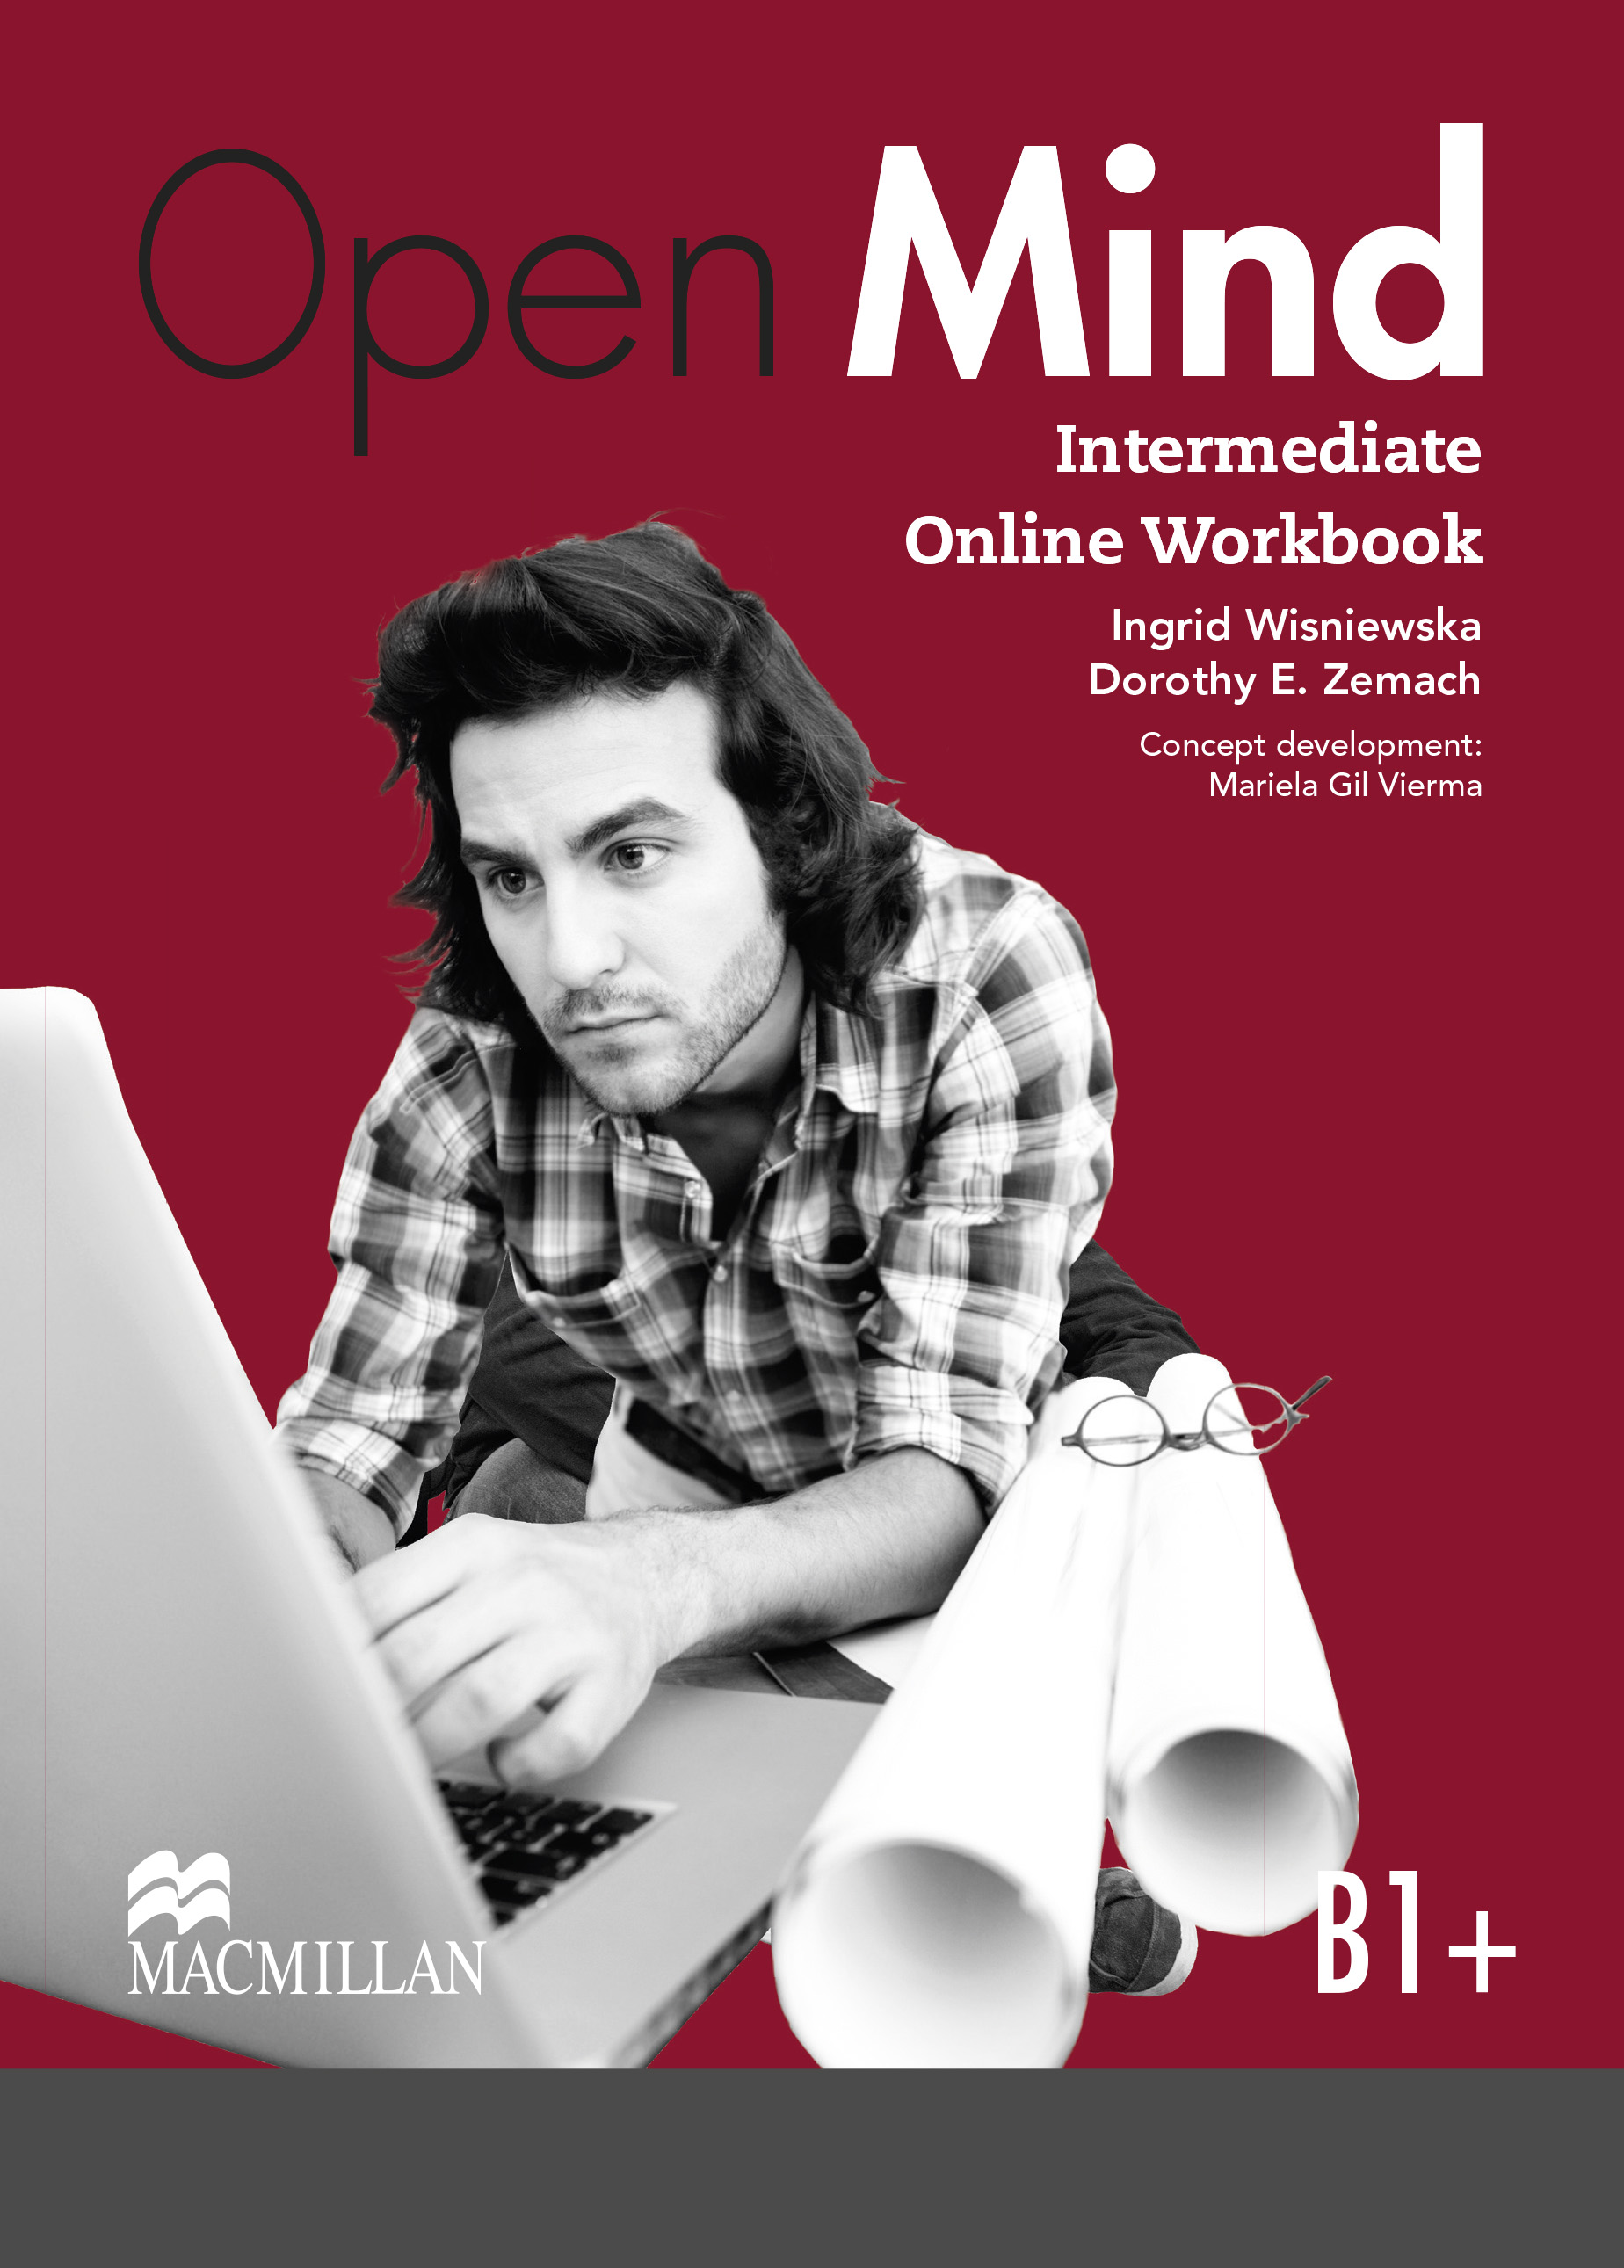 Open Mind Intermediate Online Workbook